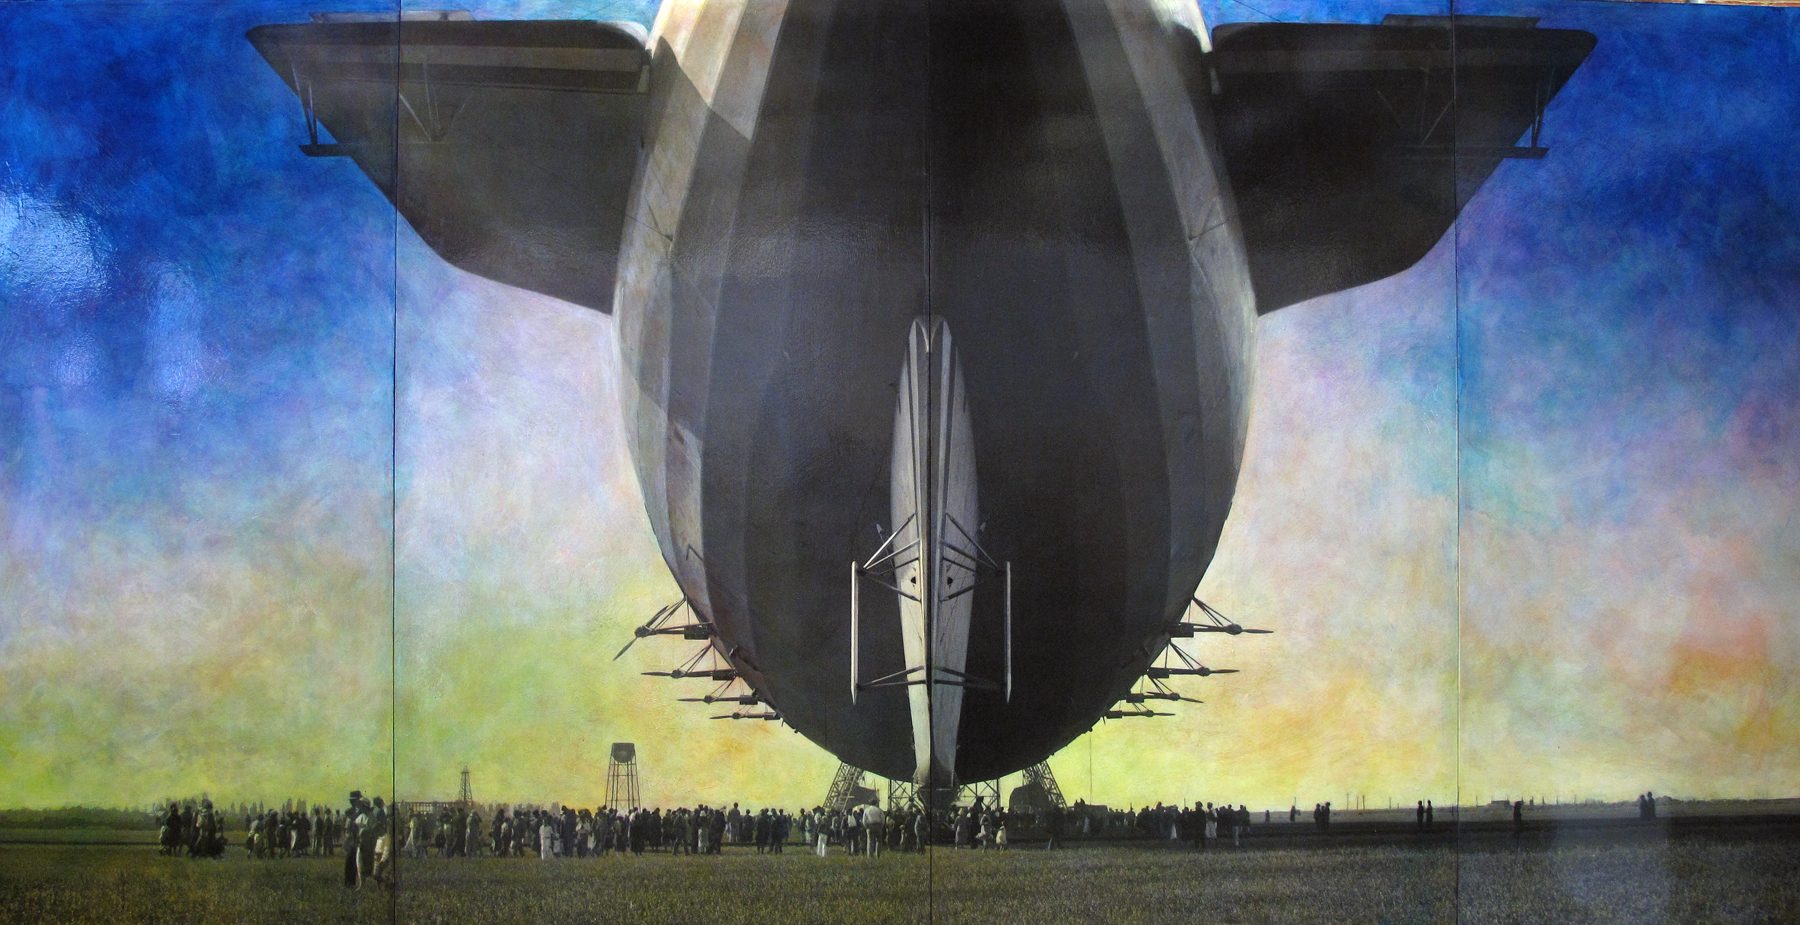 Stacey M. Carter, Tail View of Airship Akron at Moffett Field 1932, Hangar One Under Construction, 2014.